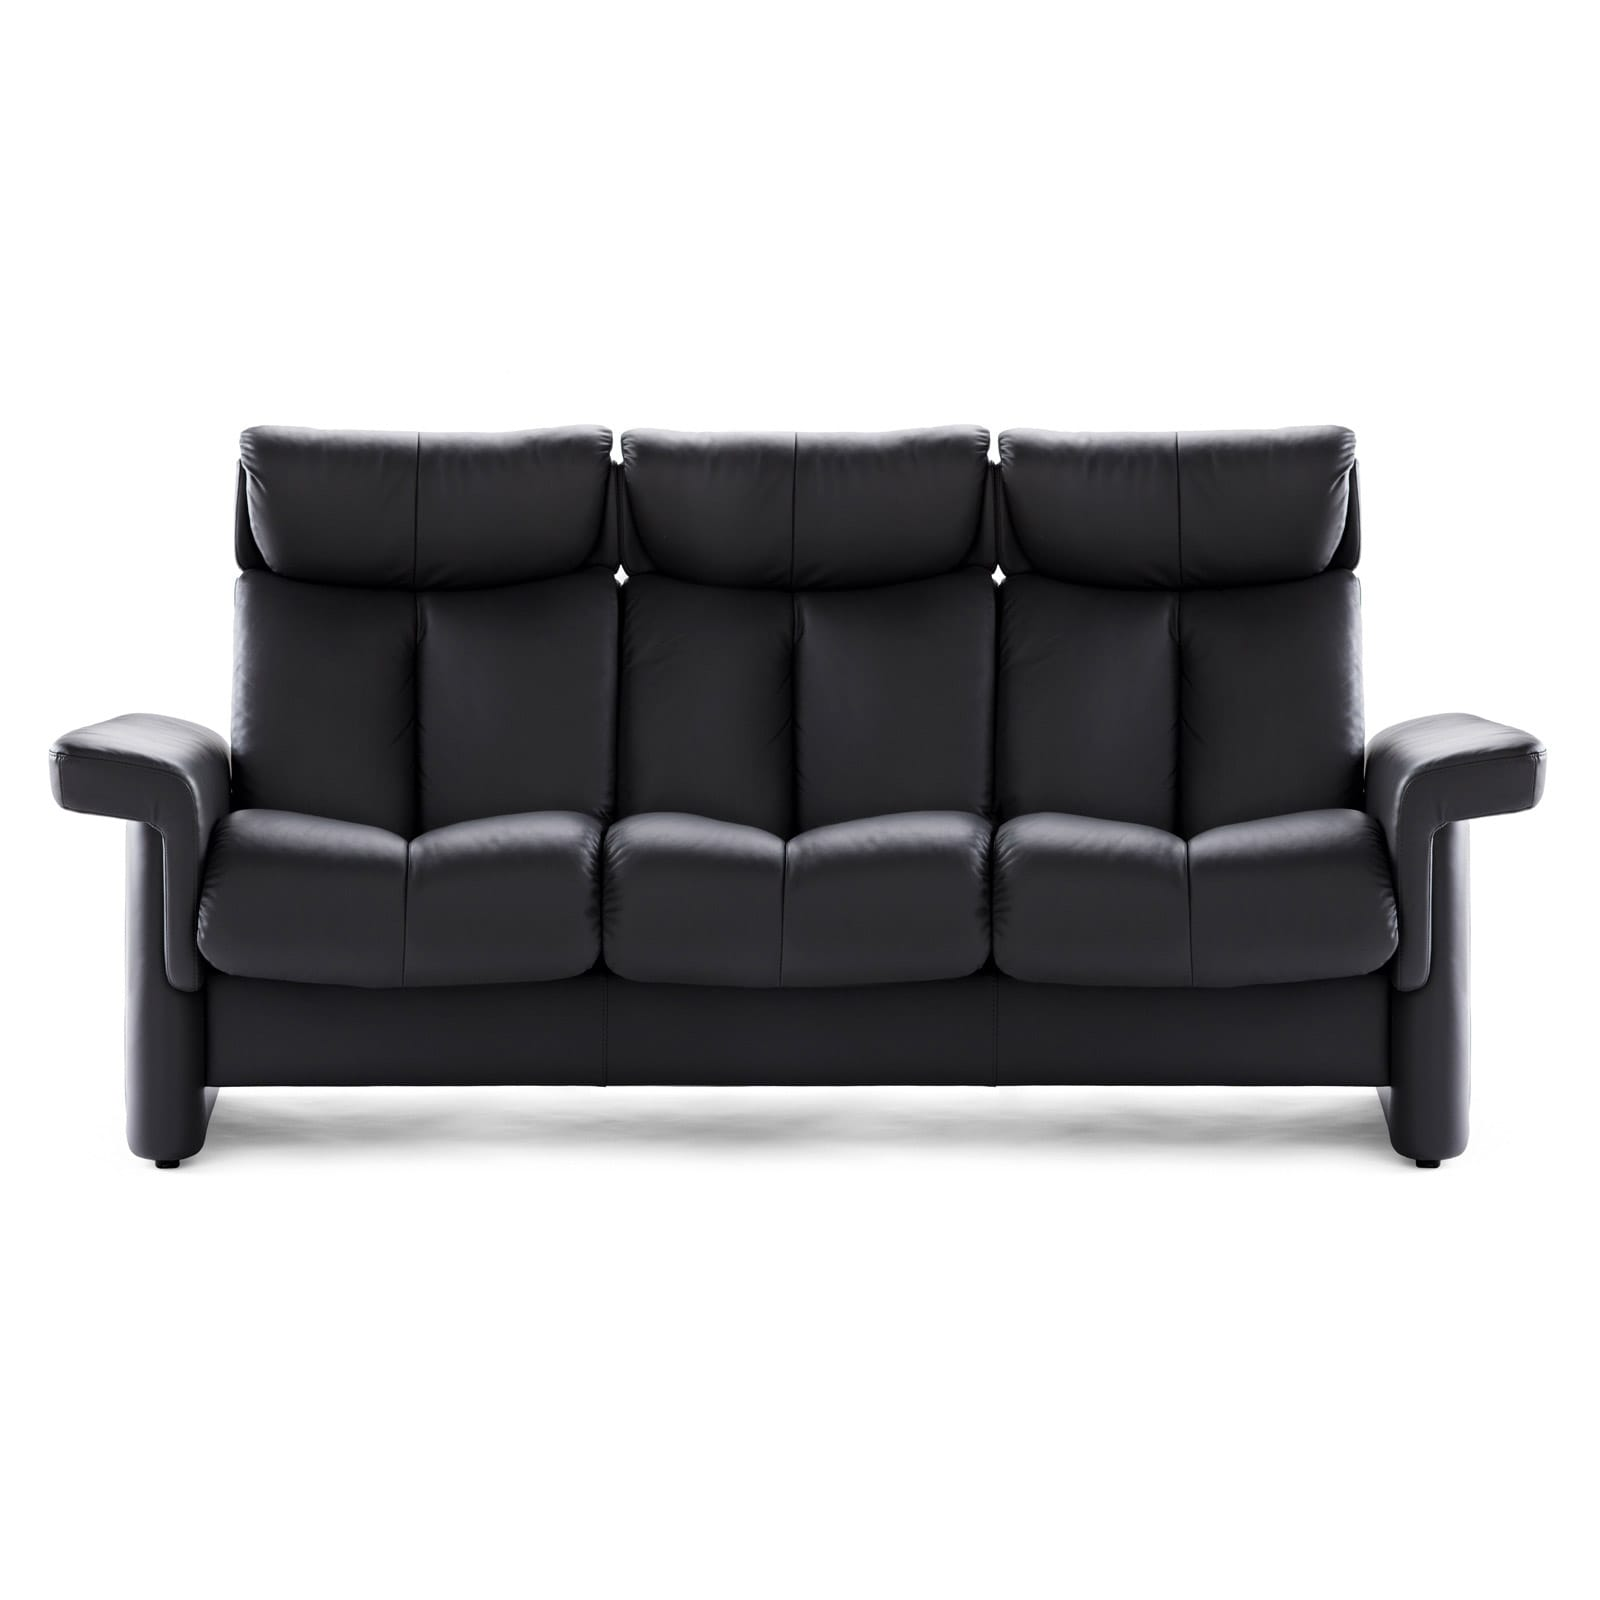 stressless sofa 3 sitzer legend m hoch lederfarbe rock. Black Bedroom Furniture Sets. Home Design Ideas